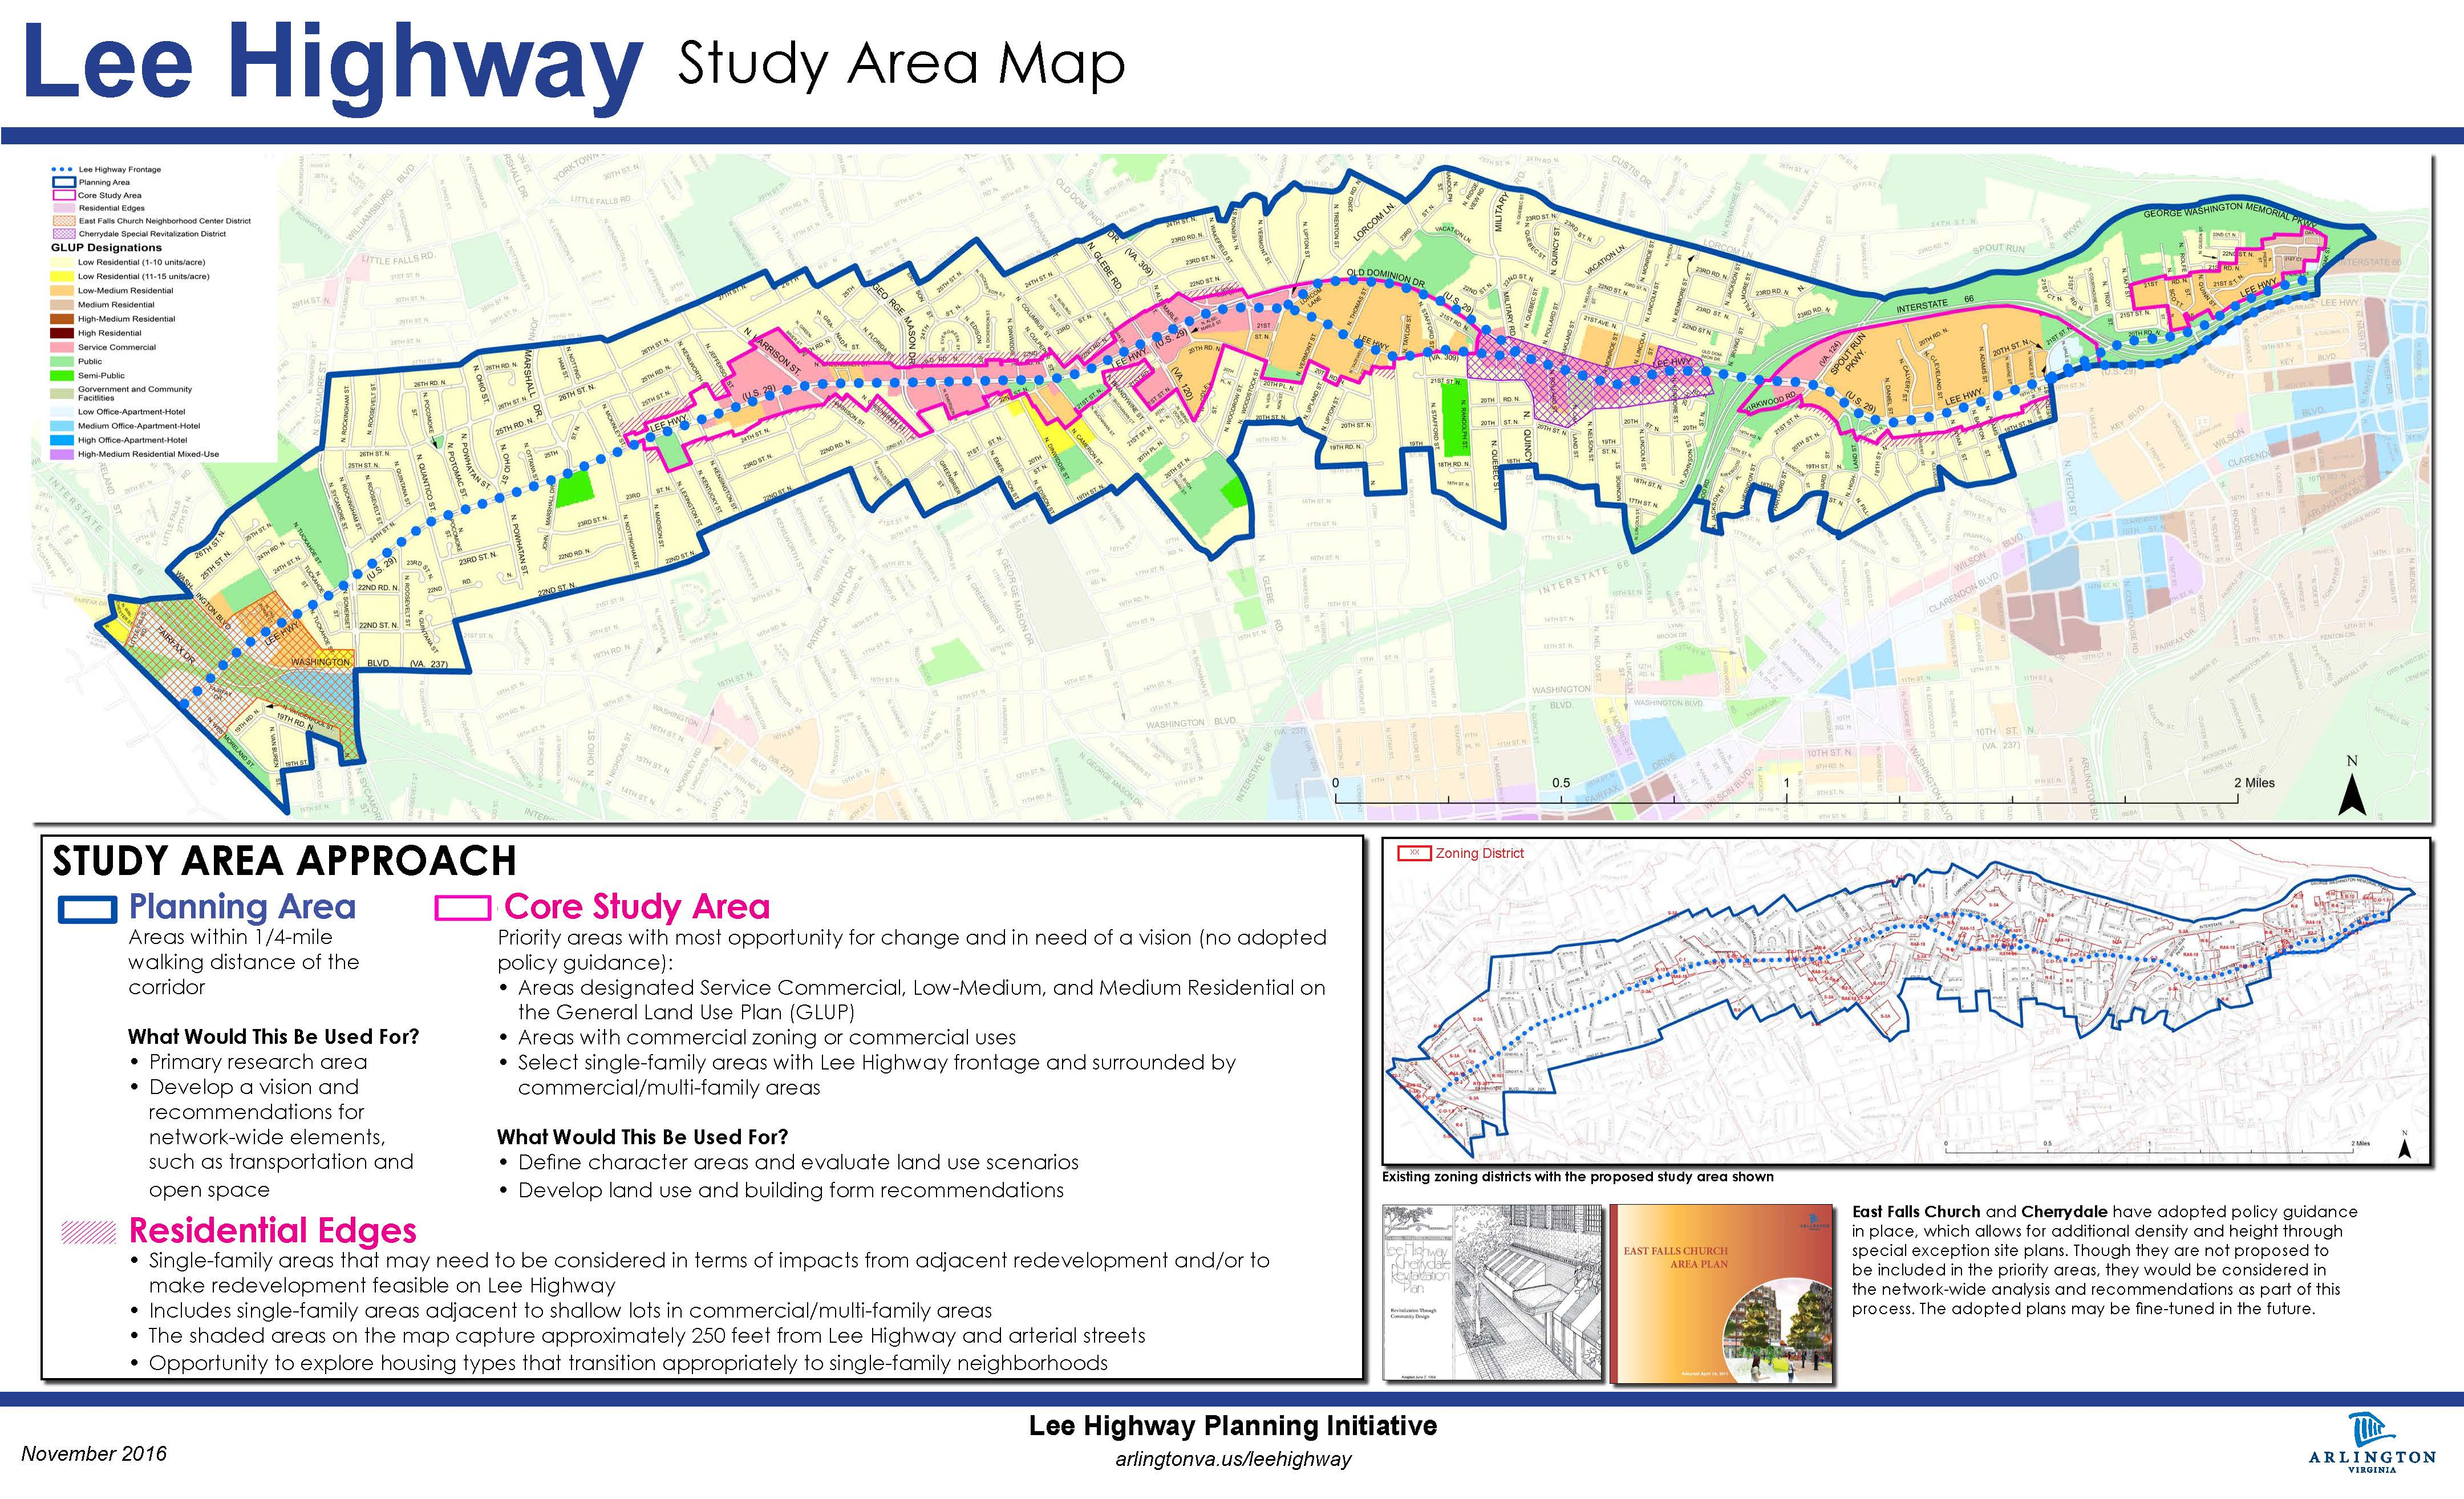 Lee Highway Planning Arlington VA